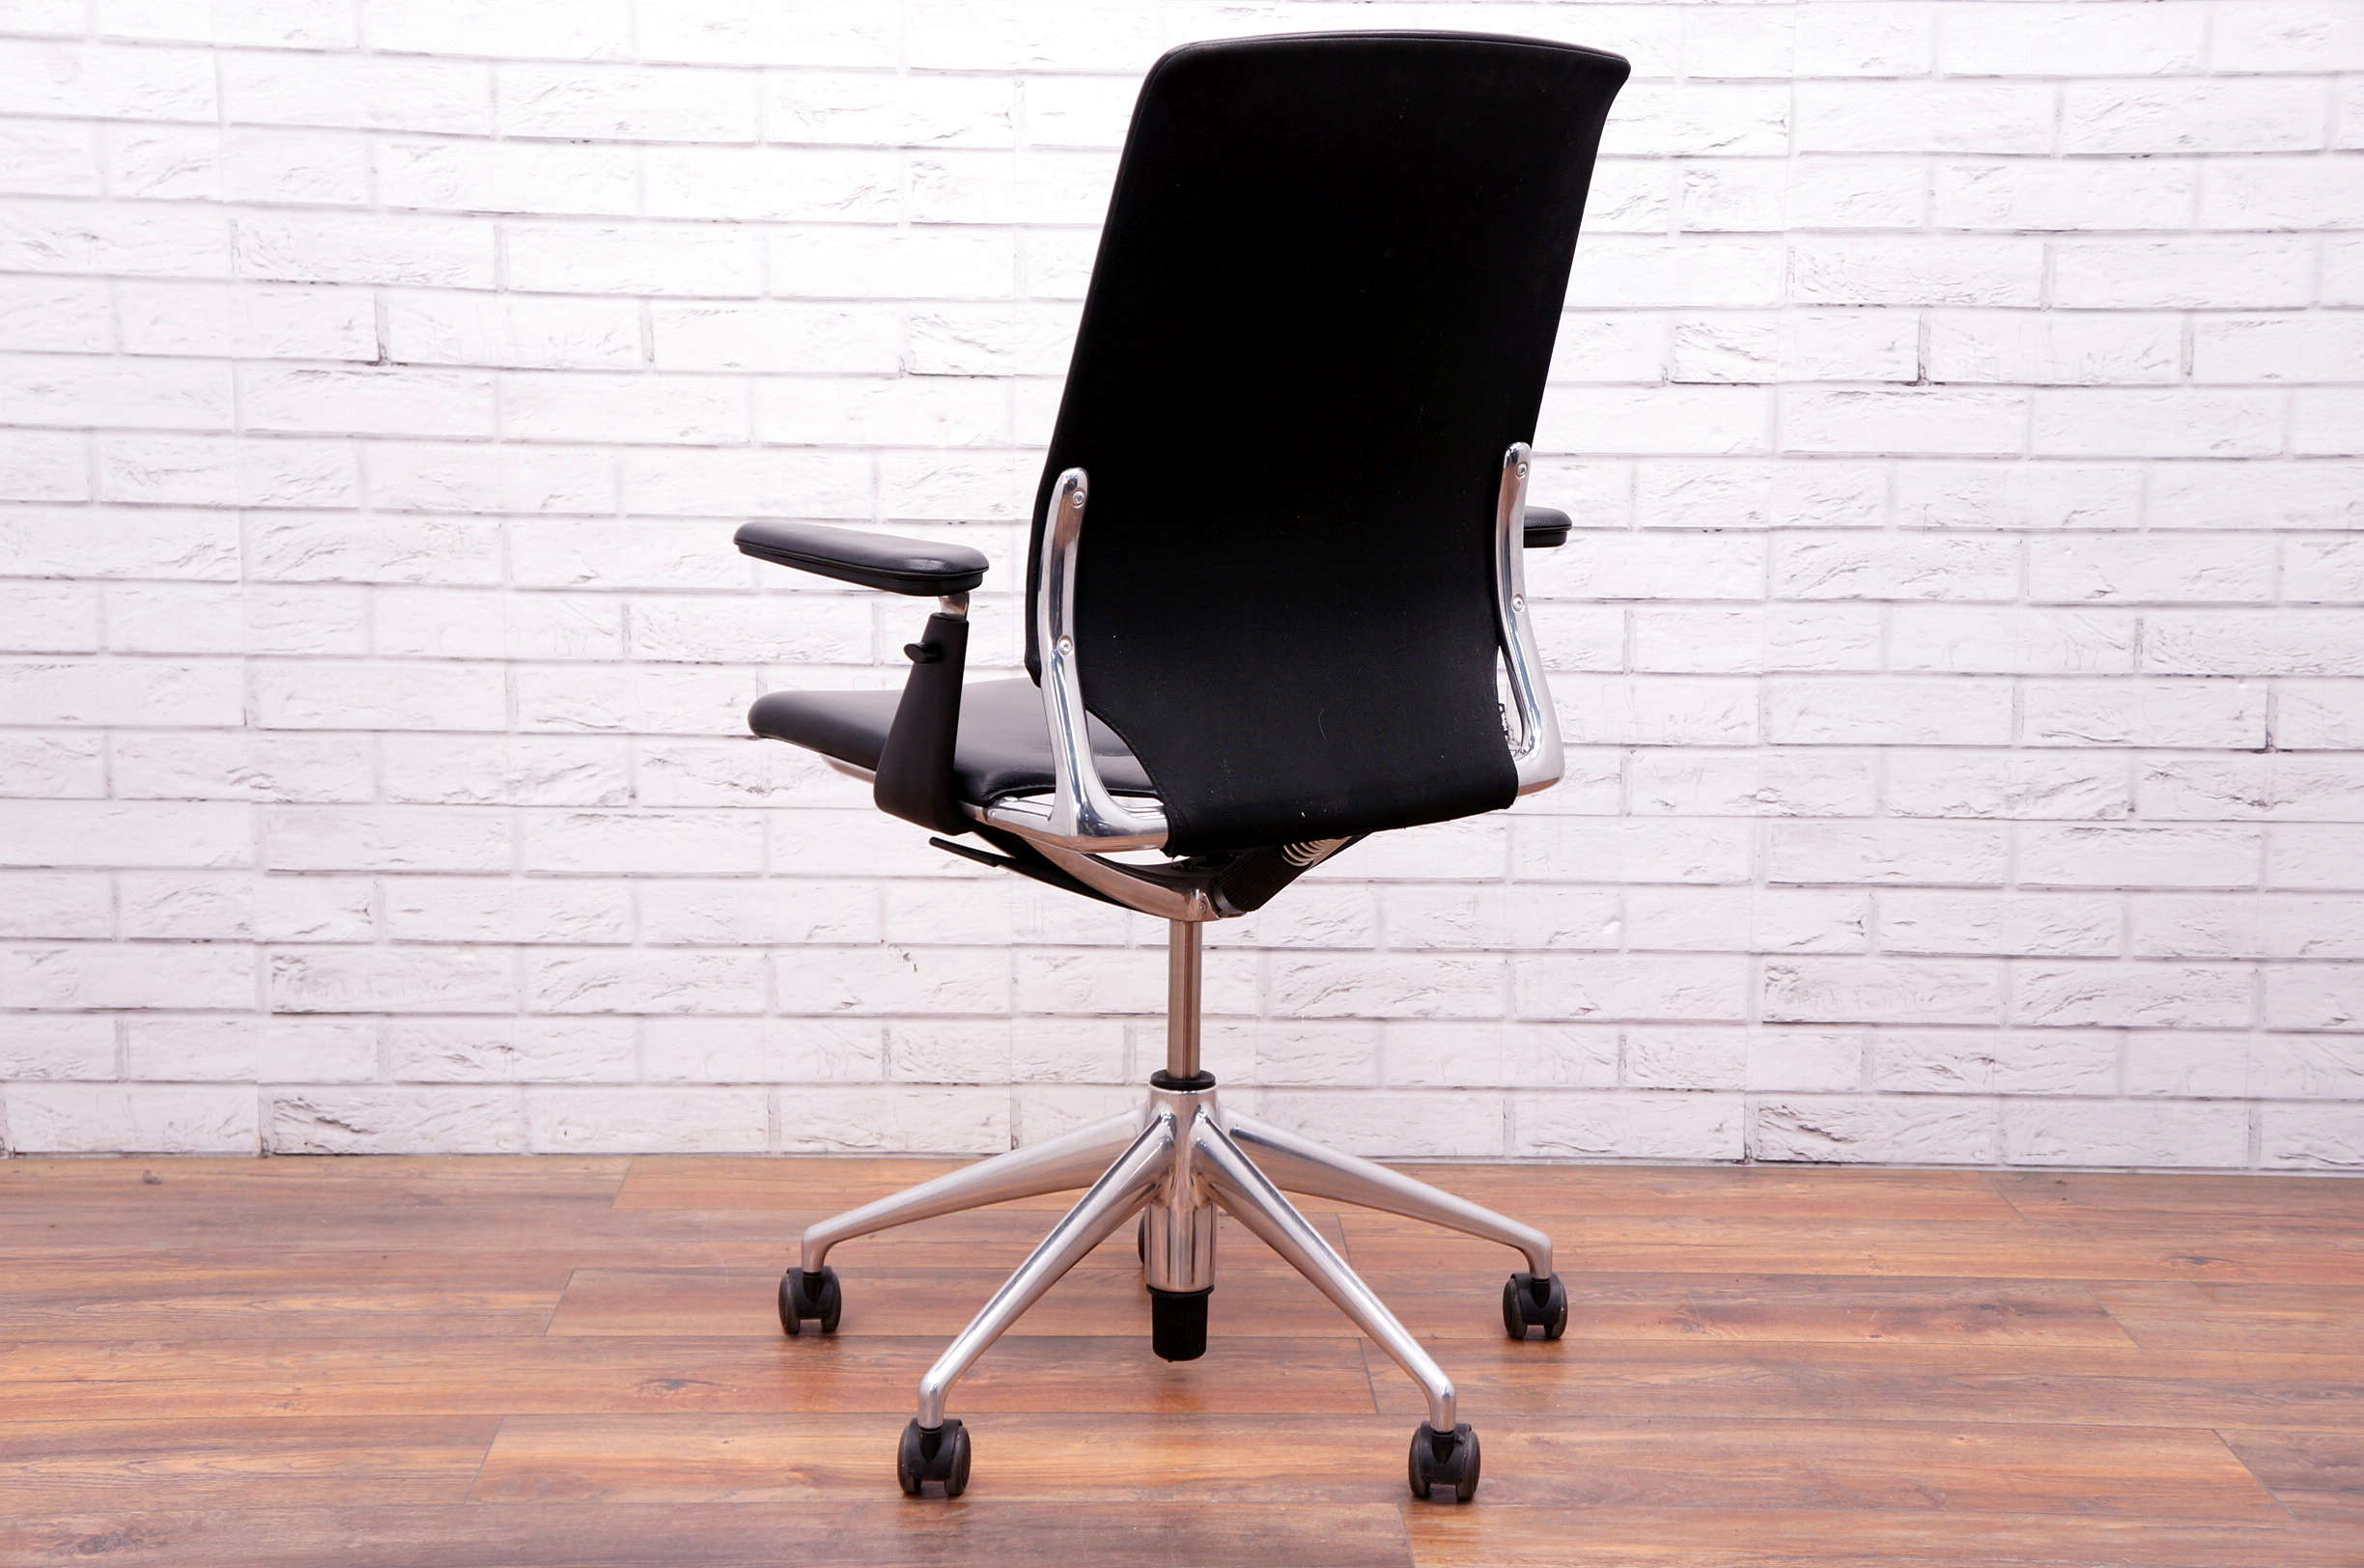 Vitra Office Chair Vitra Meda Executive Office Chair In Black